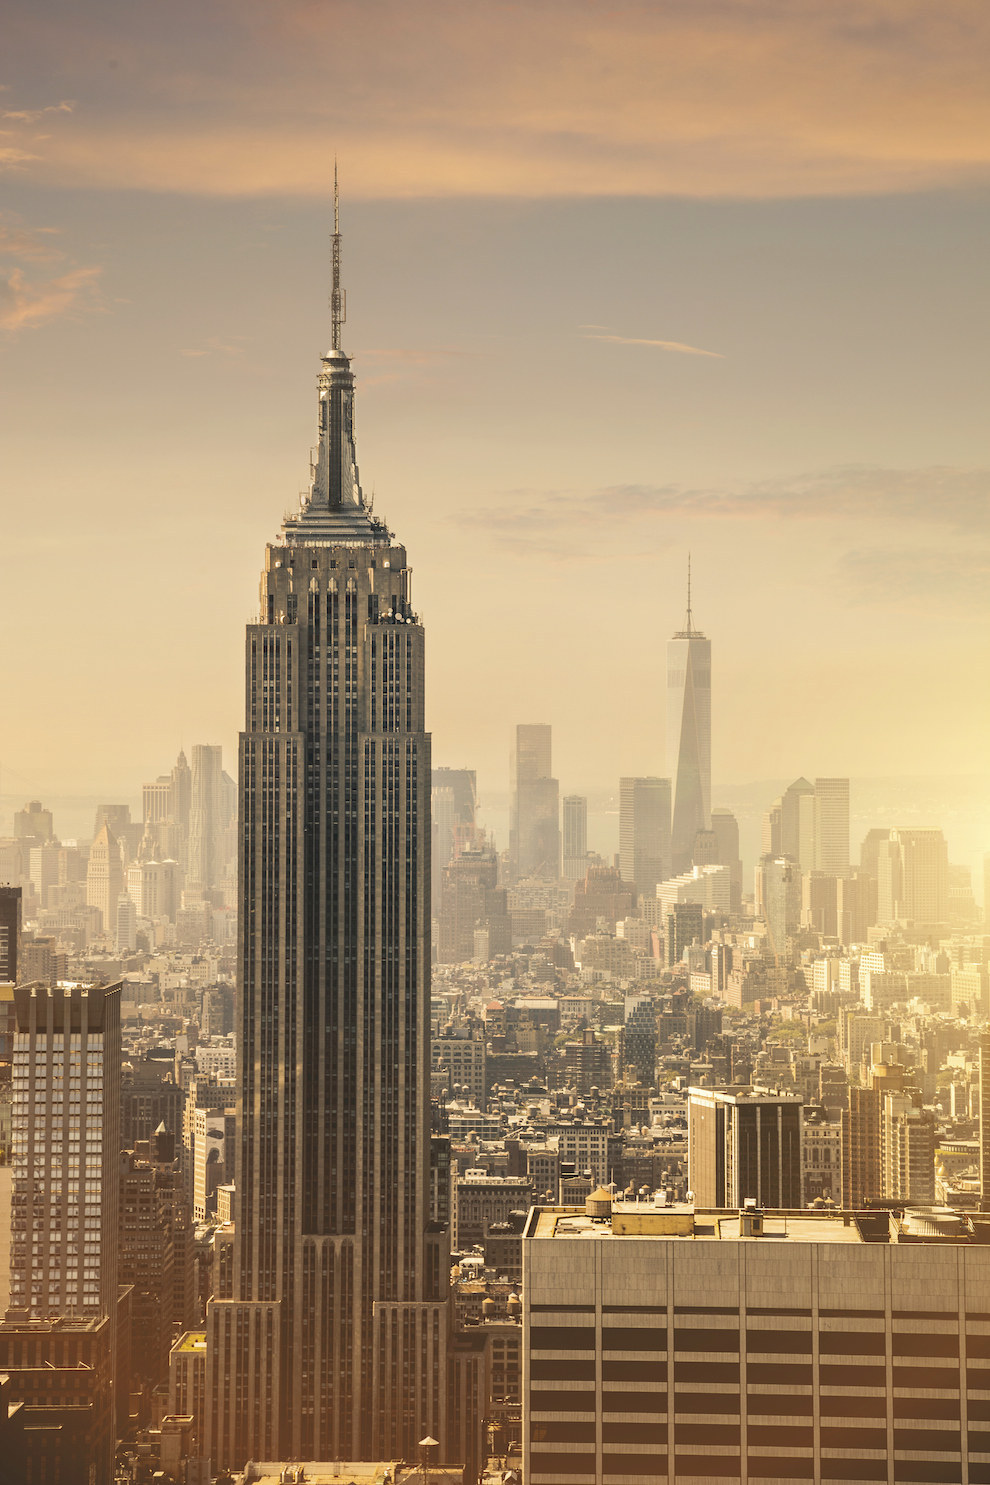 Empire State Building (New York)